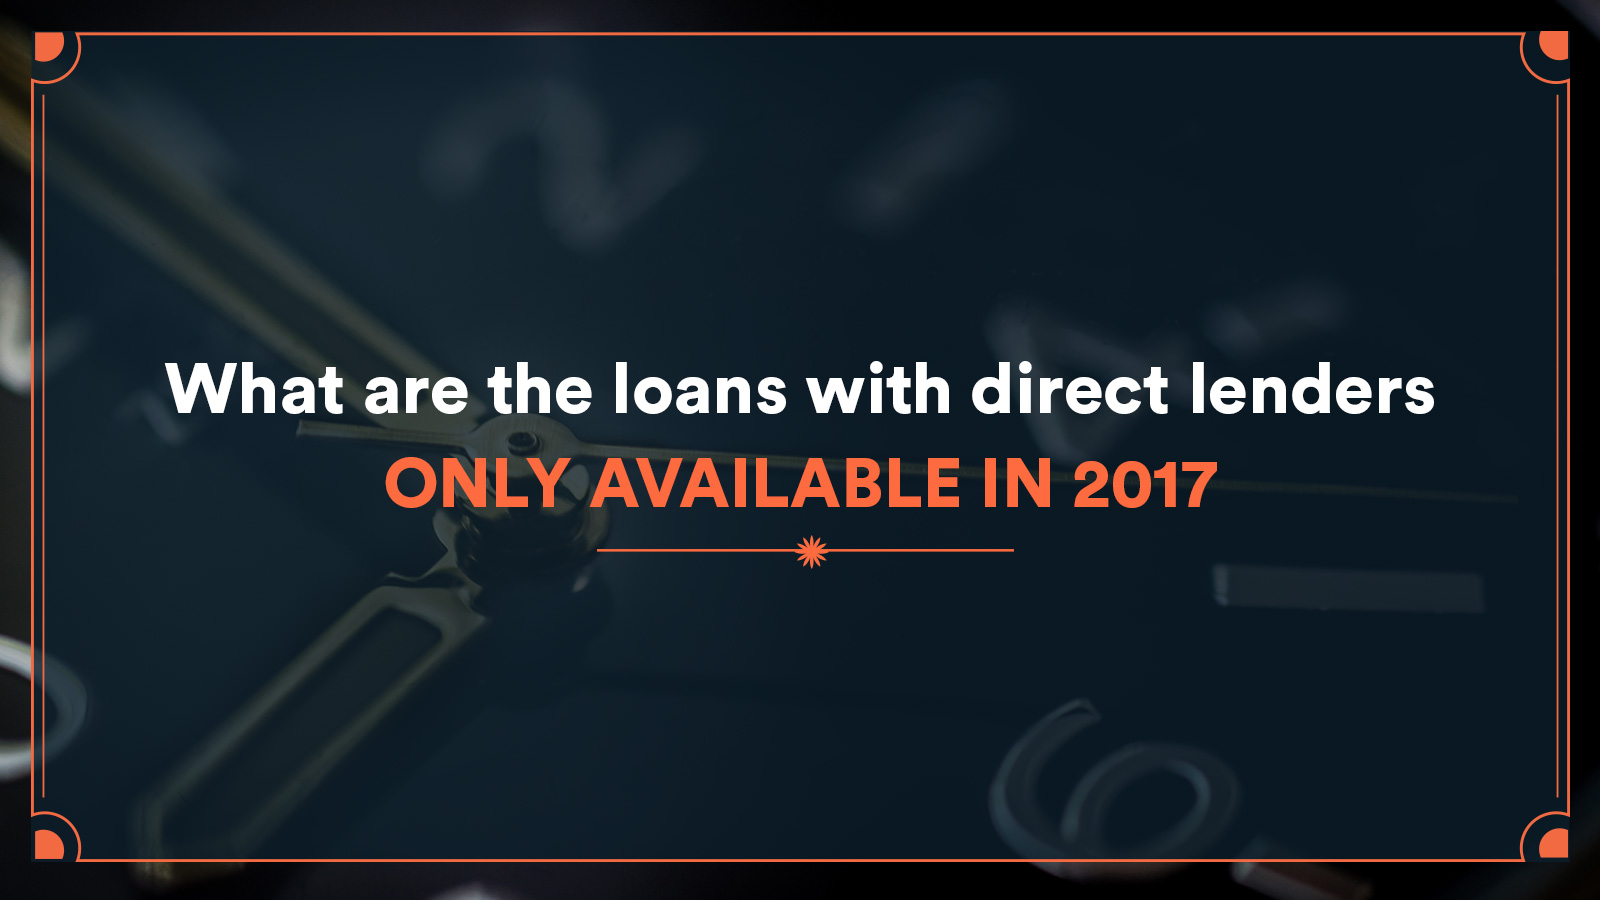 loans with direct lenders only